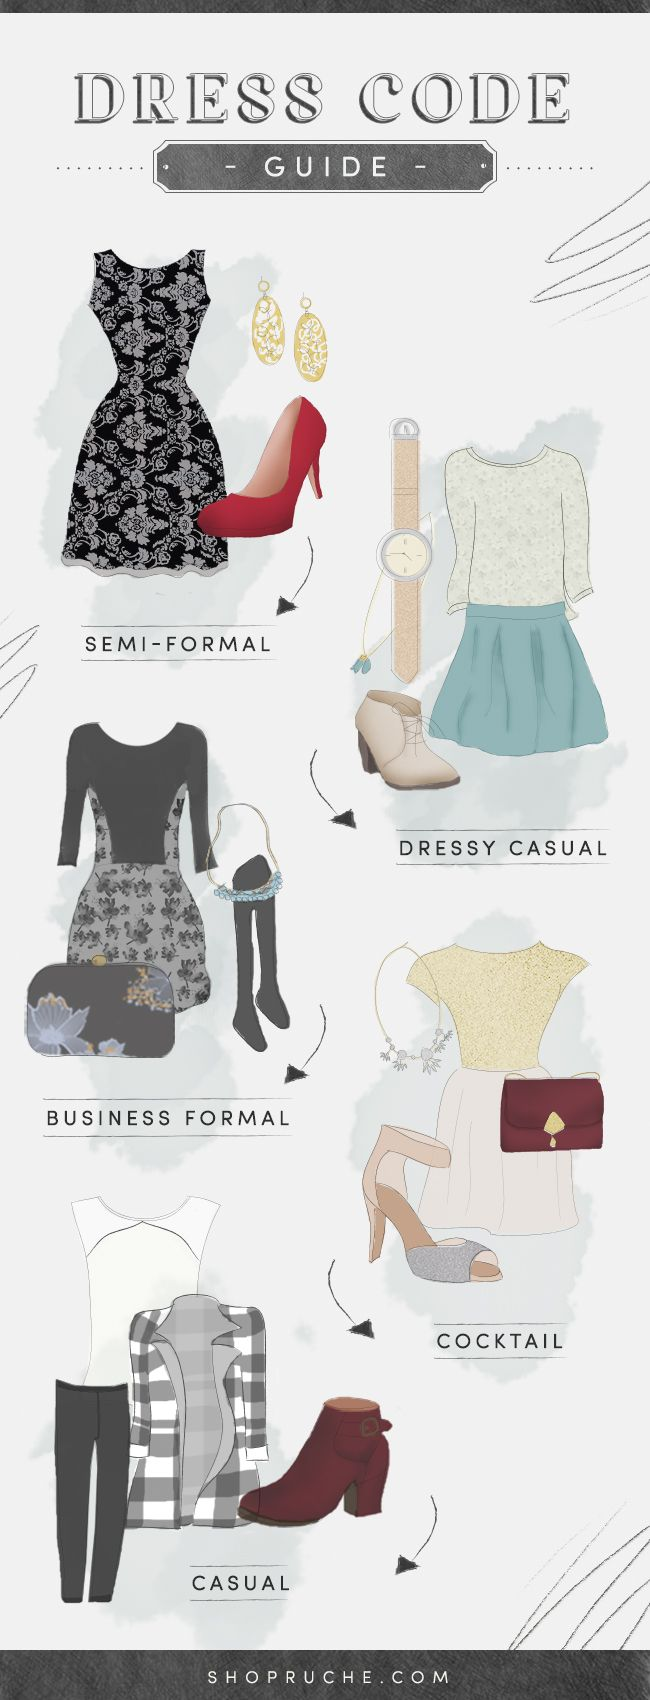 Casual dress code meme for Formal dress code wedding